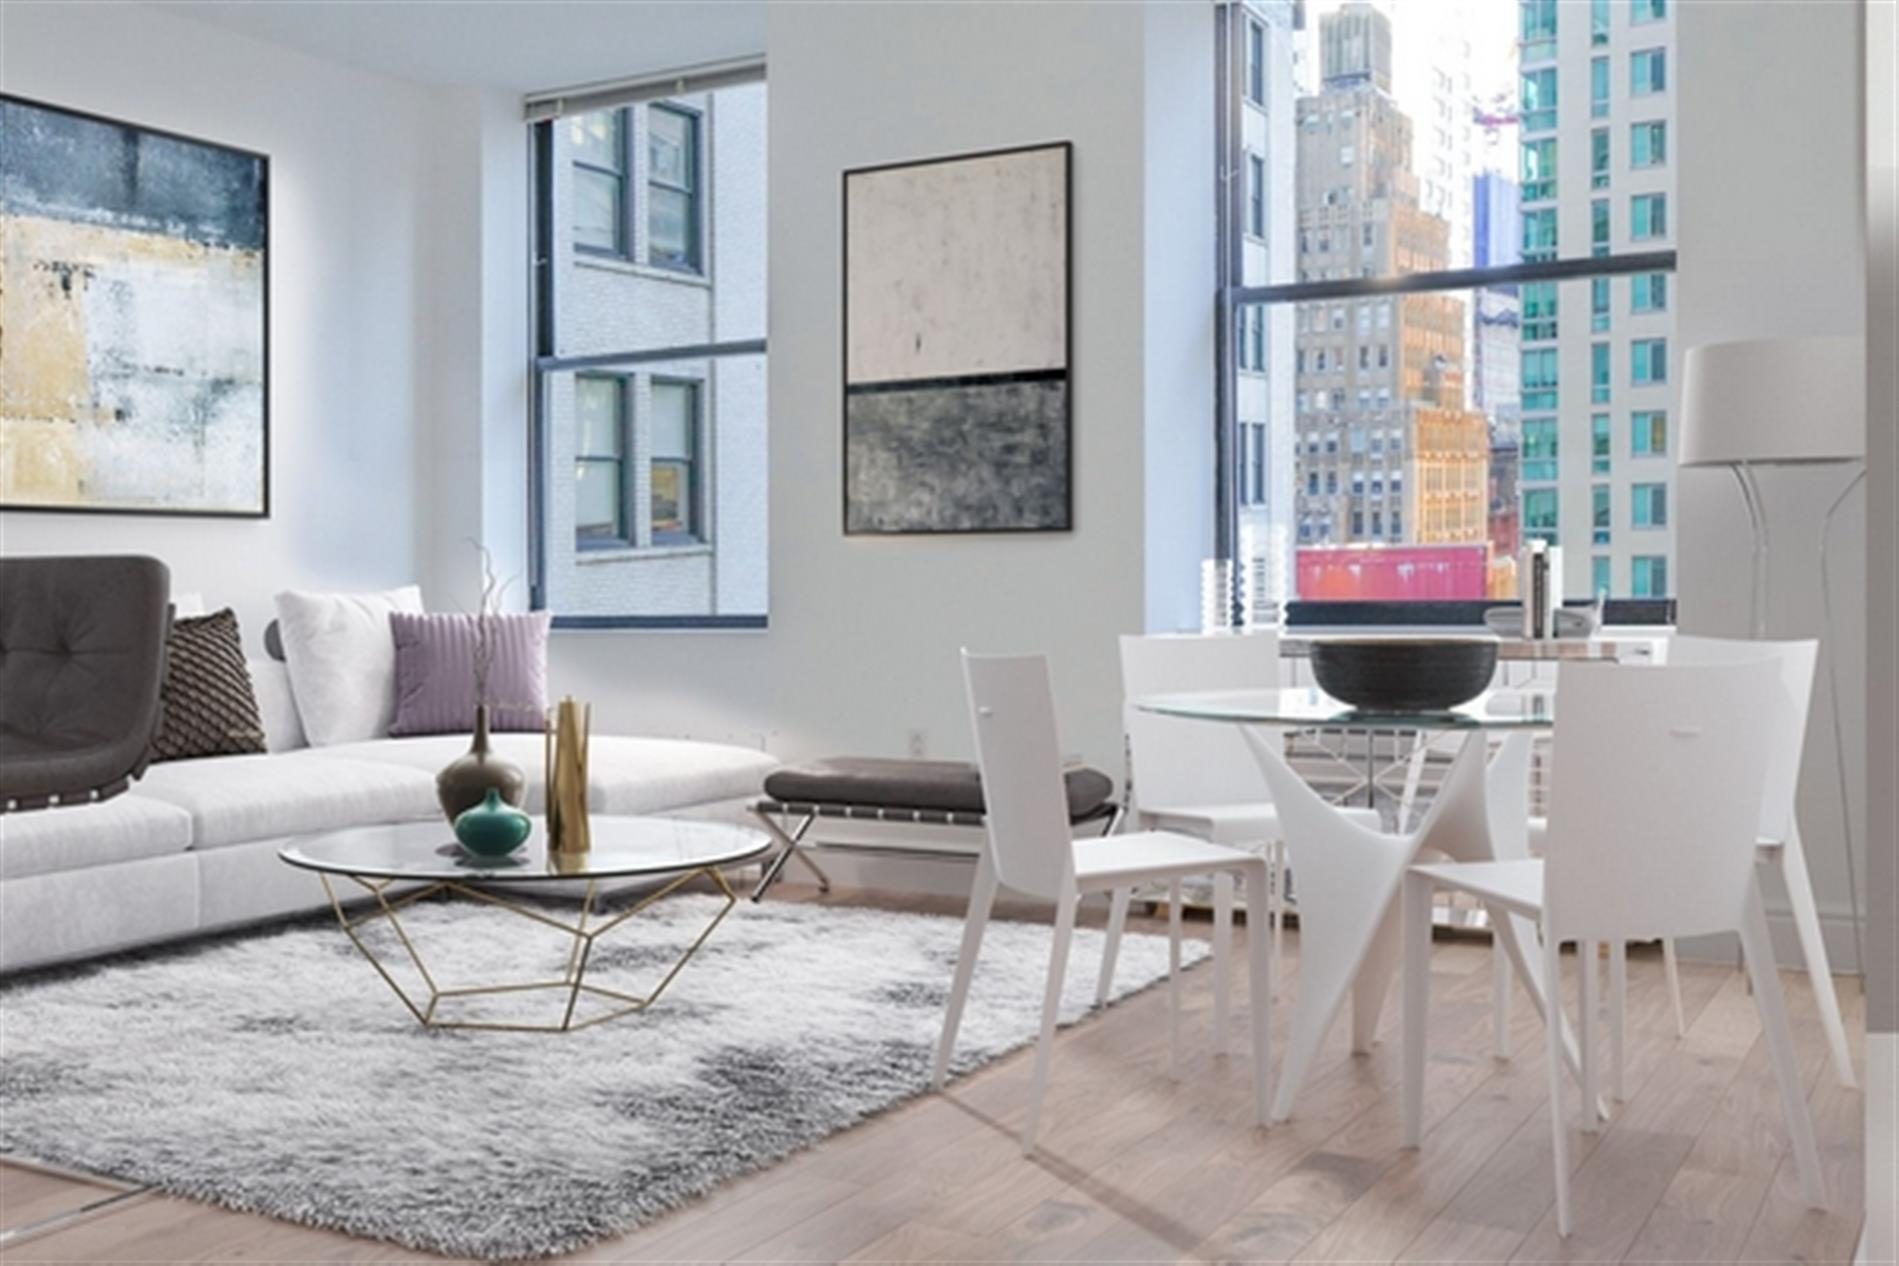 Two bedroom - Financial District